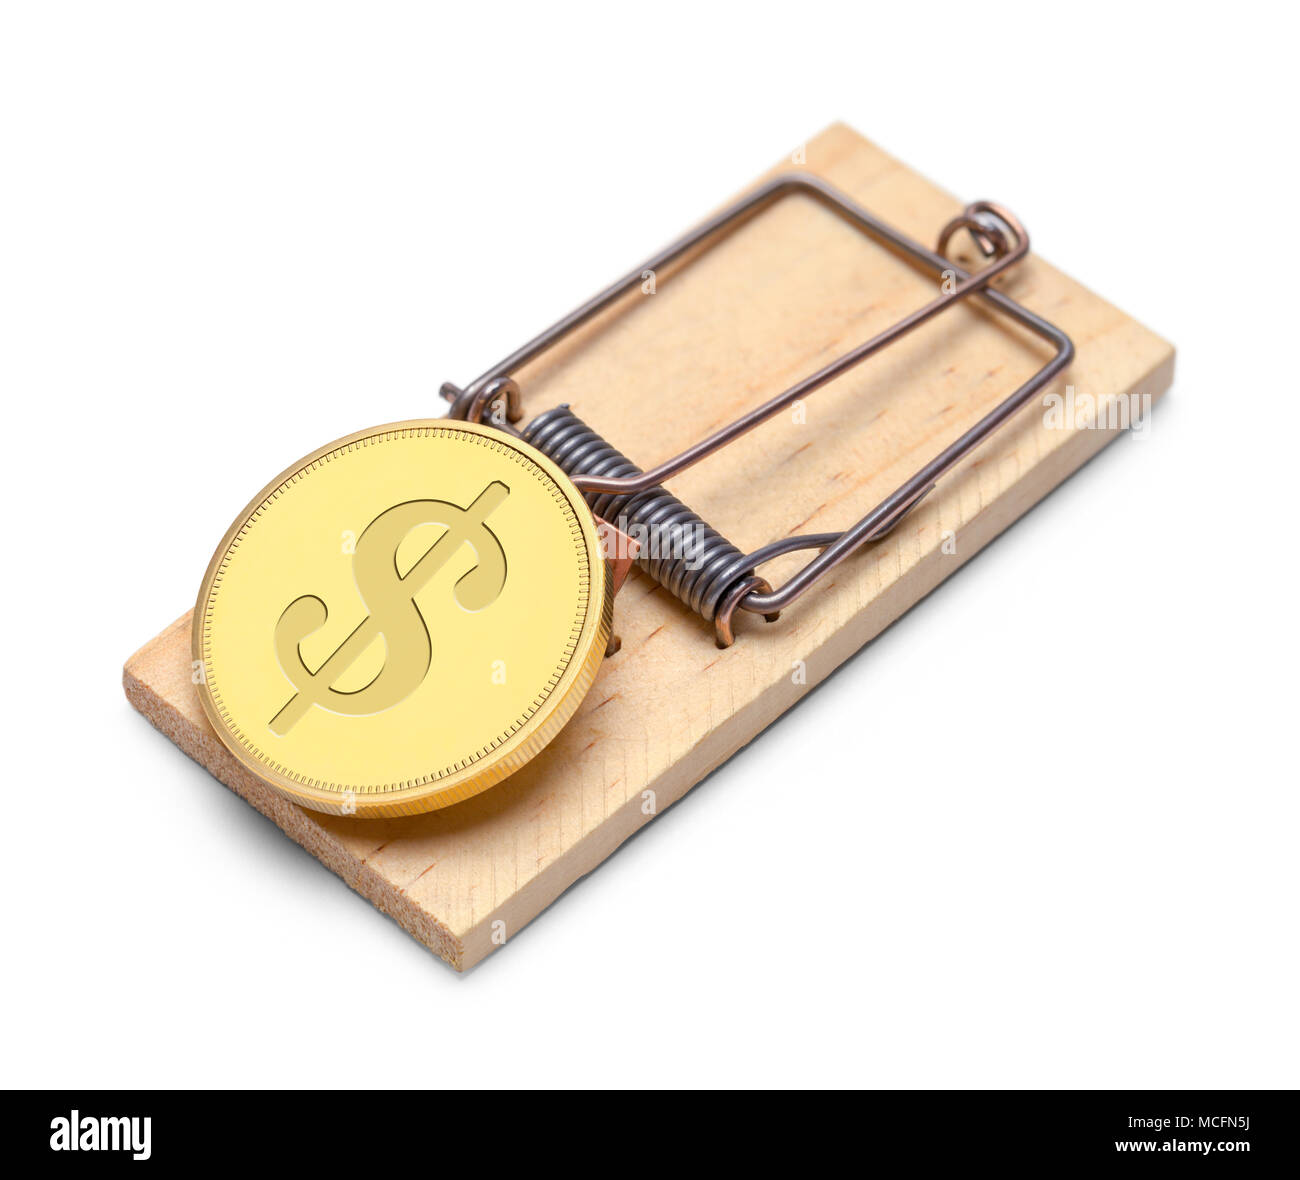 Gold Money Coin with a Trap Isolated on a White Background. - Stock Image